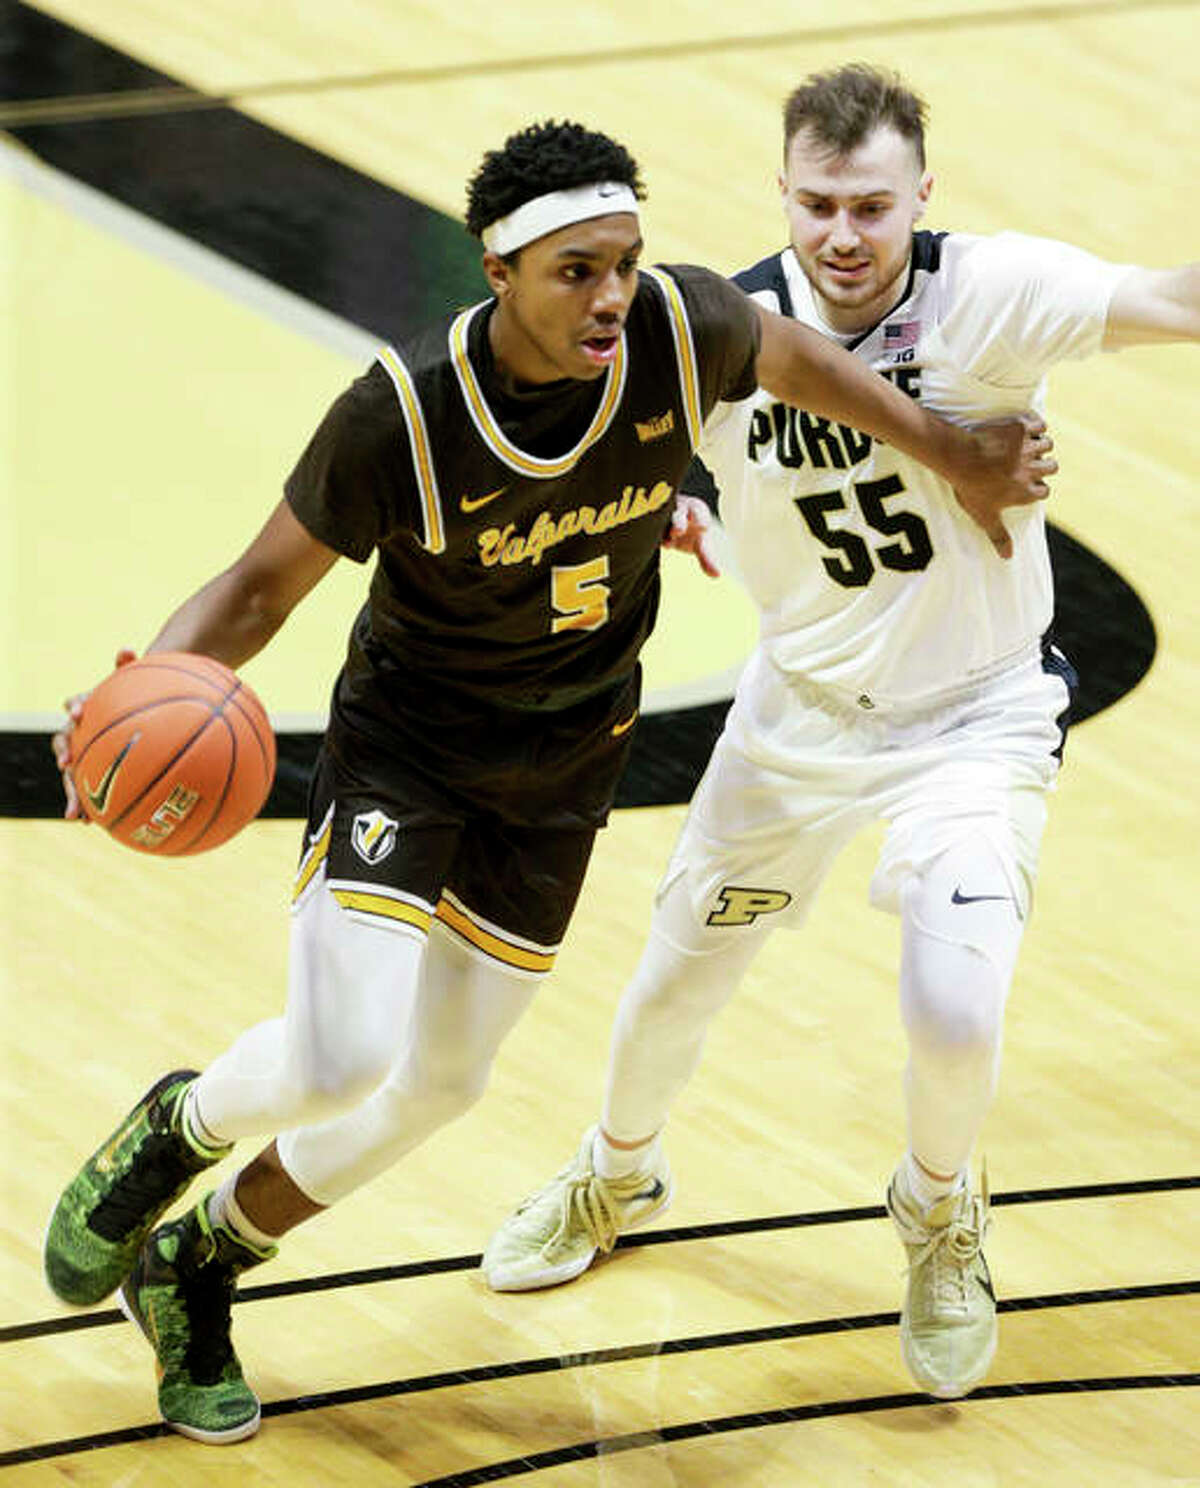 Valpo's Donovan Clay (left), shown dribbling past Purdue's Sasha Stefanovic in a game last Friday in West Lafayette, Ind., scored six points in Wednesday's victory over SIUE in Valparaiso, Indiana.